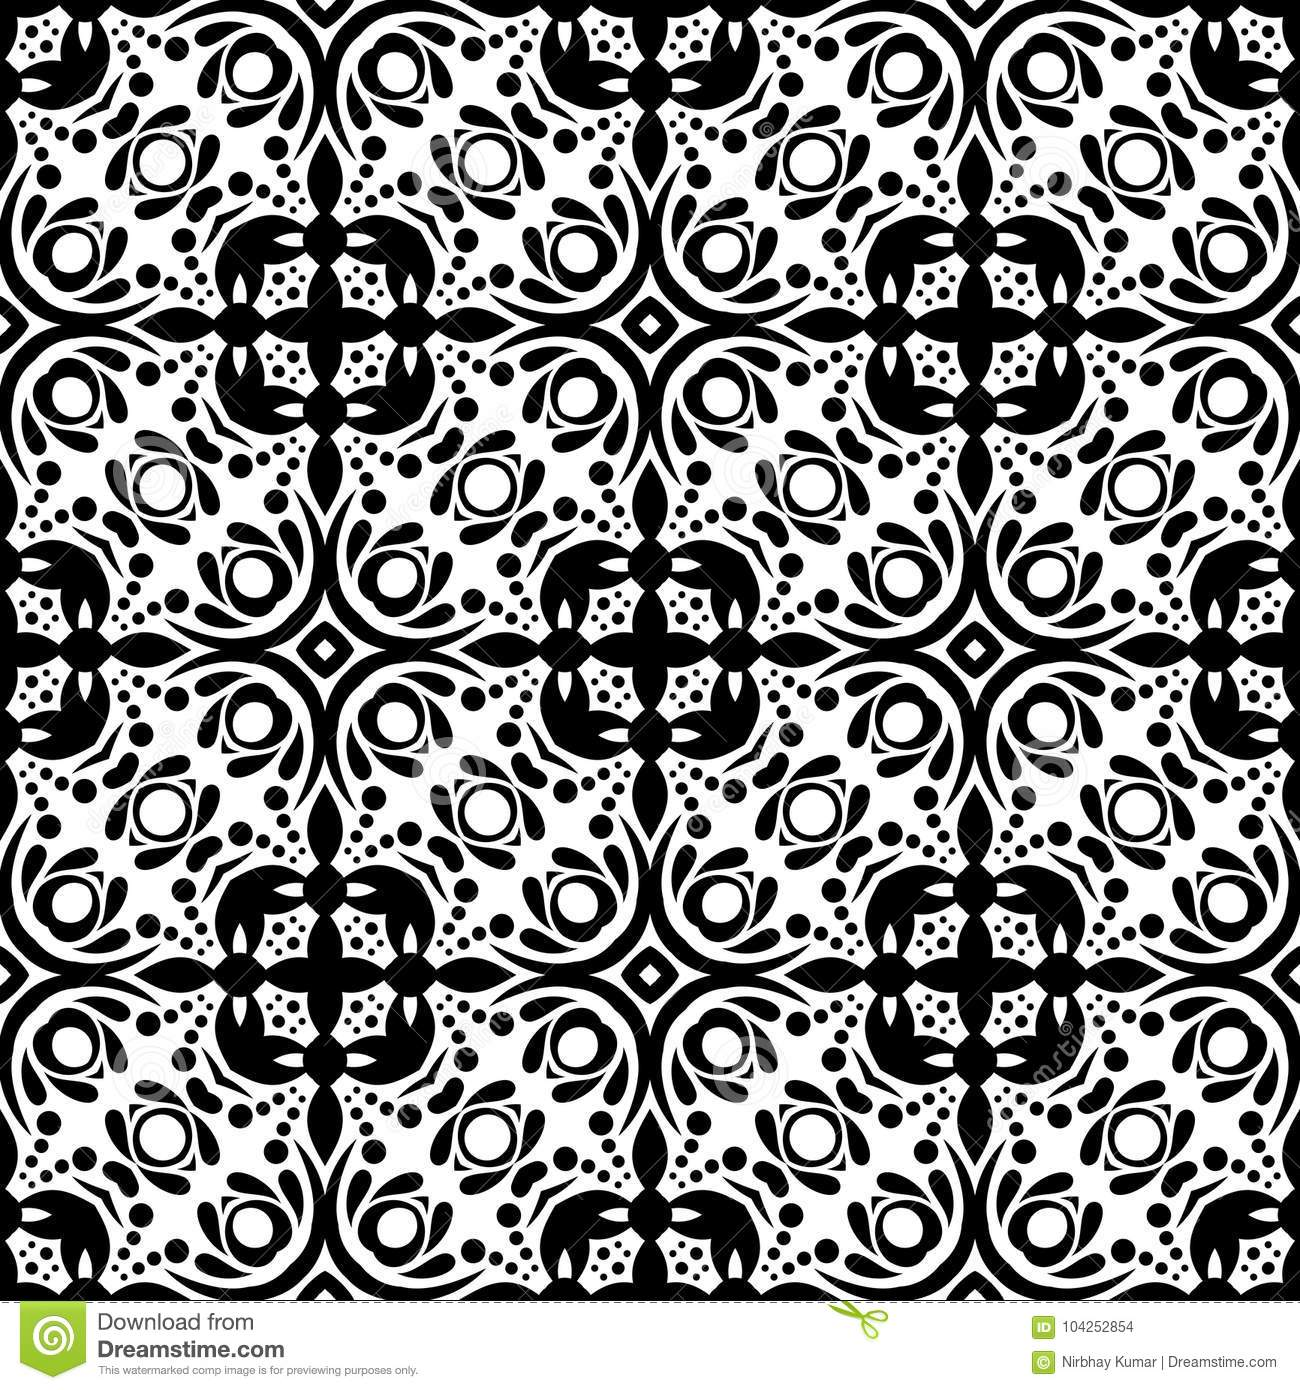 Floral geomagnetic seamless pattern vector